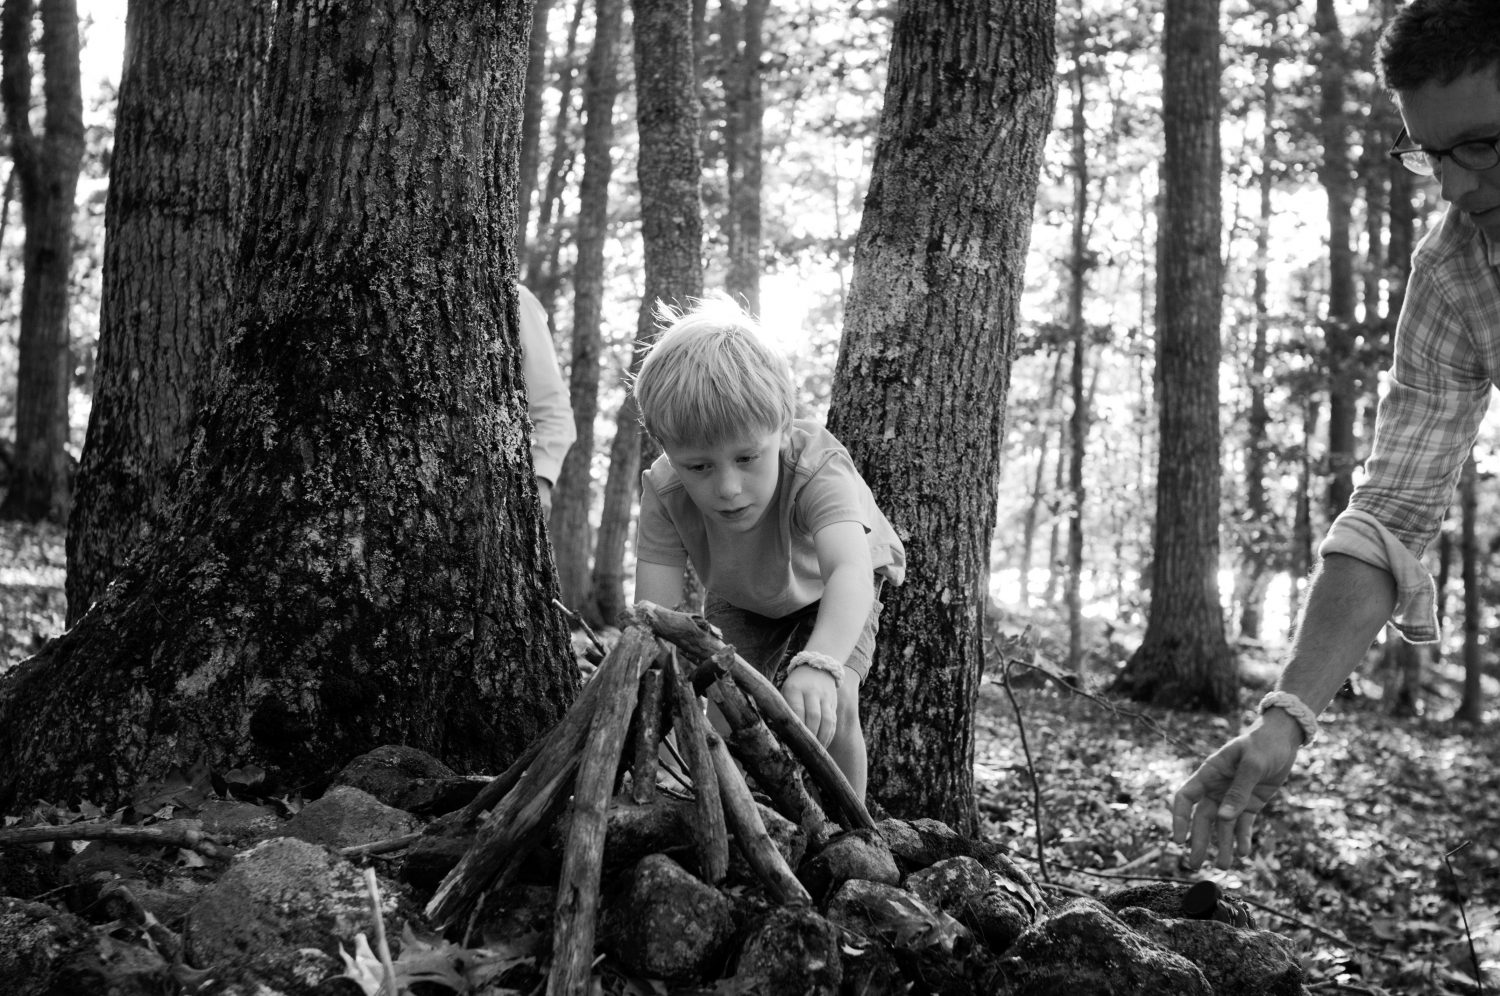 young boy building small wooden tee pee in the forest